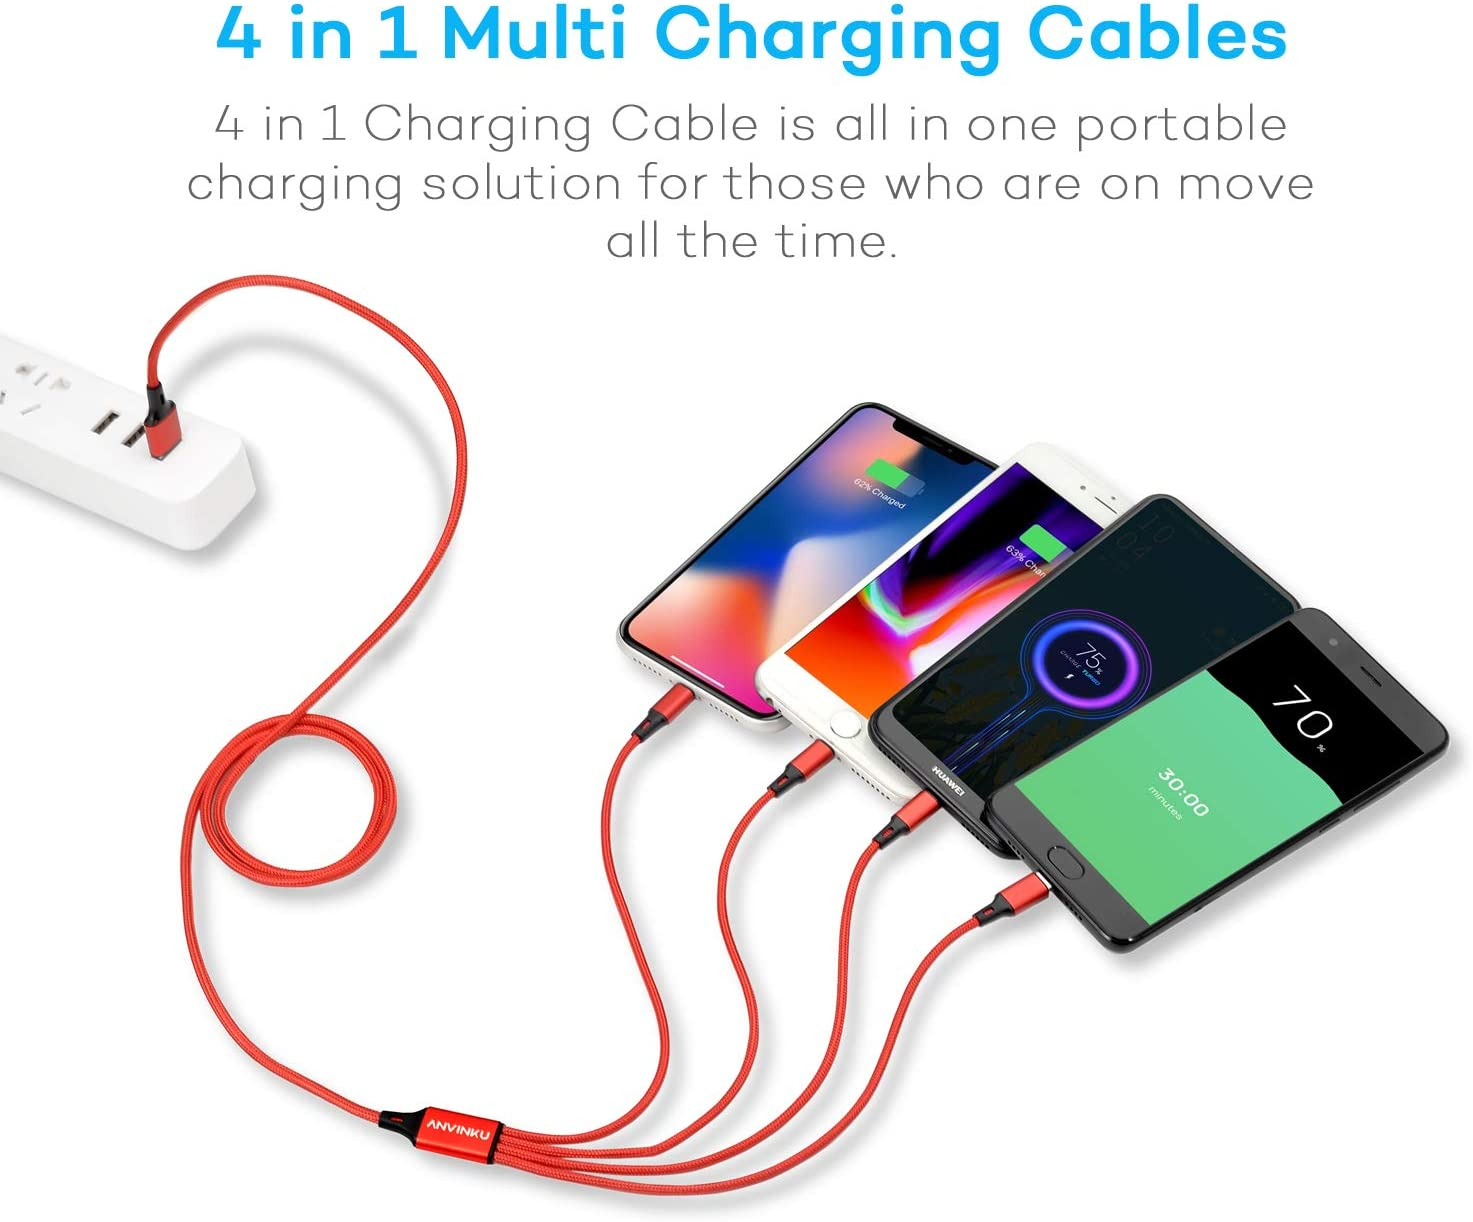 Multi-Charging Cable Horse Runs Freely On The Grassland Multi 3 in 1 Retractable Multi Fast Charge Cable with Micro USB//Type C Compatible with Cell Phones Tablets and More